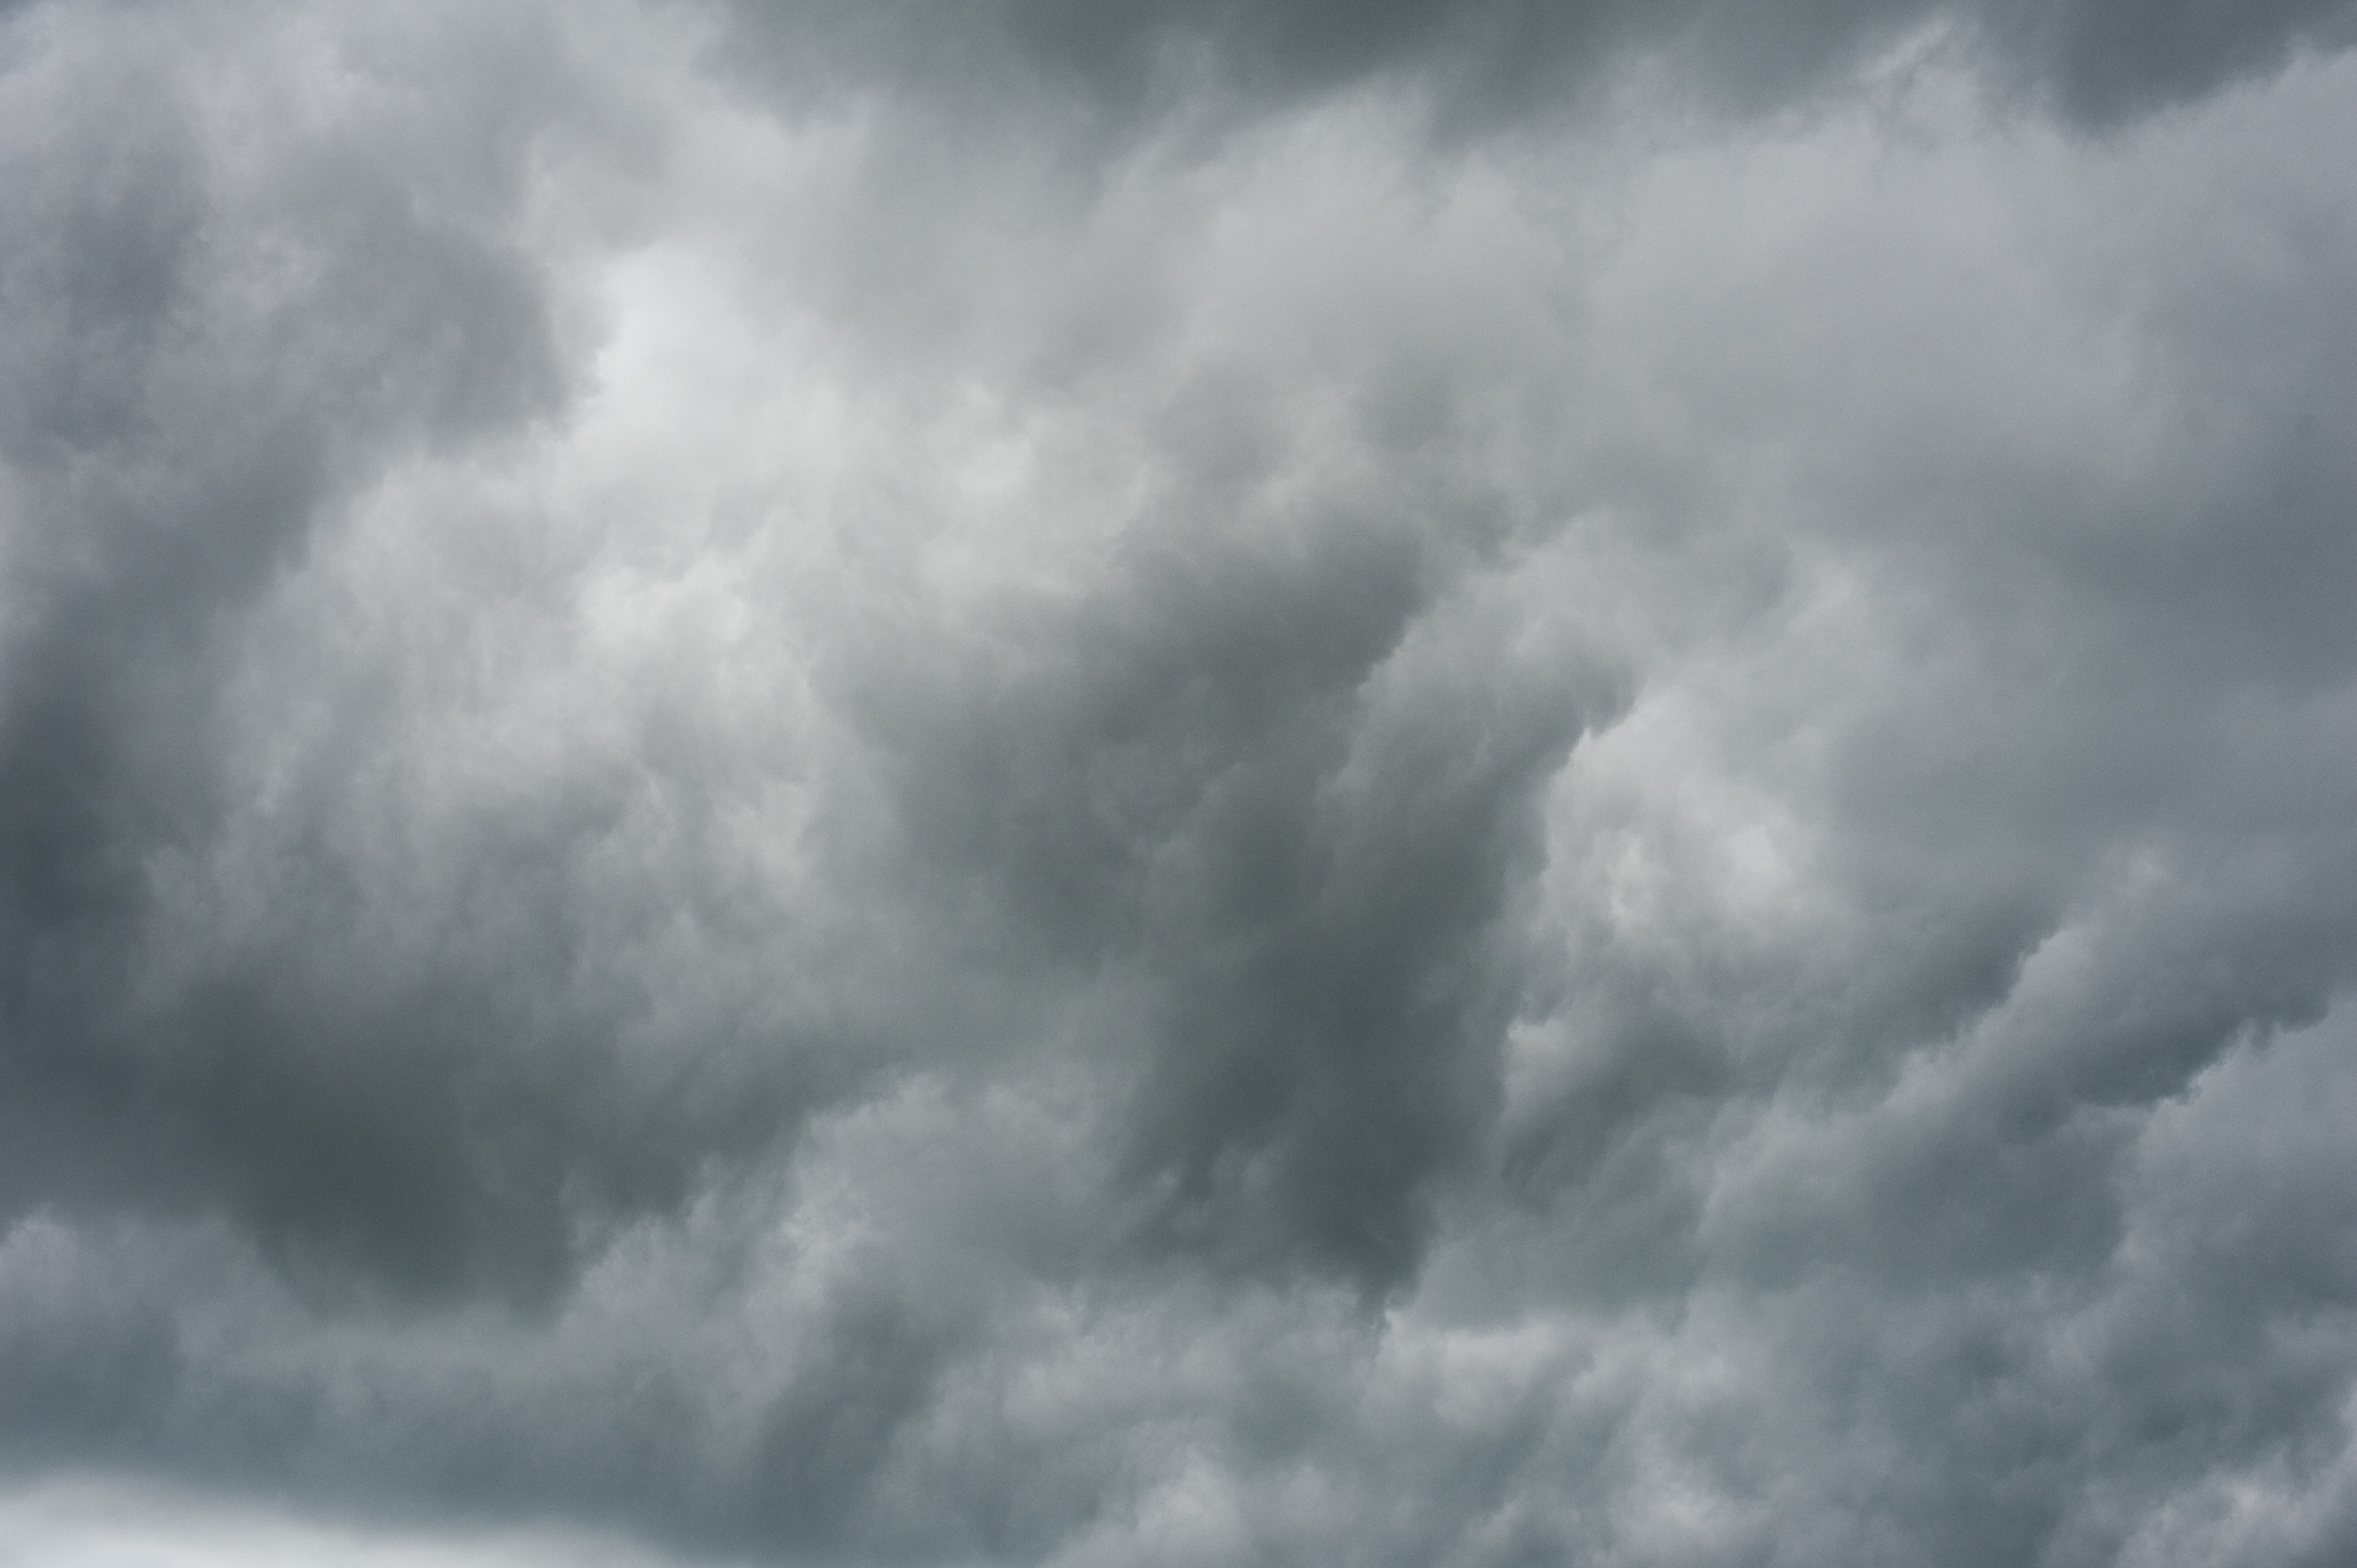 Full frame nature background of a stormy sky with ominous grey clouds for weather themed concepts